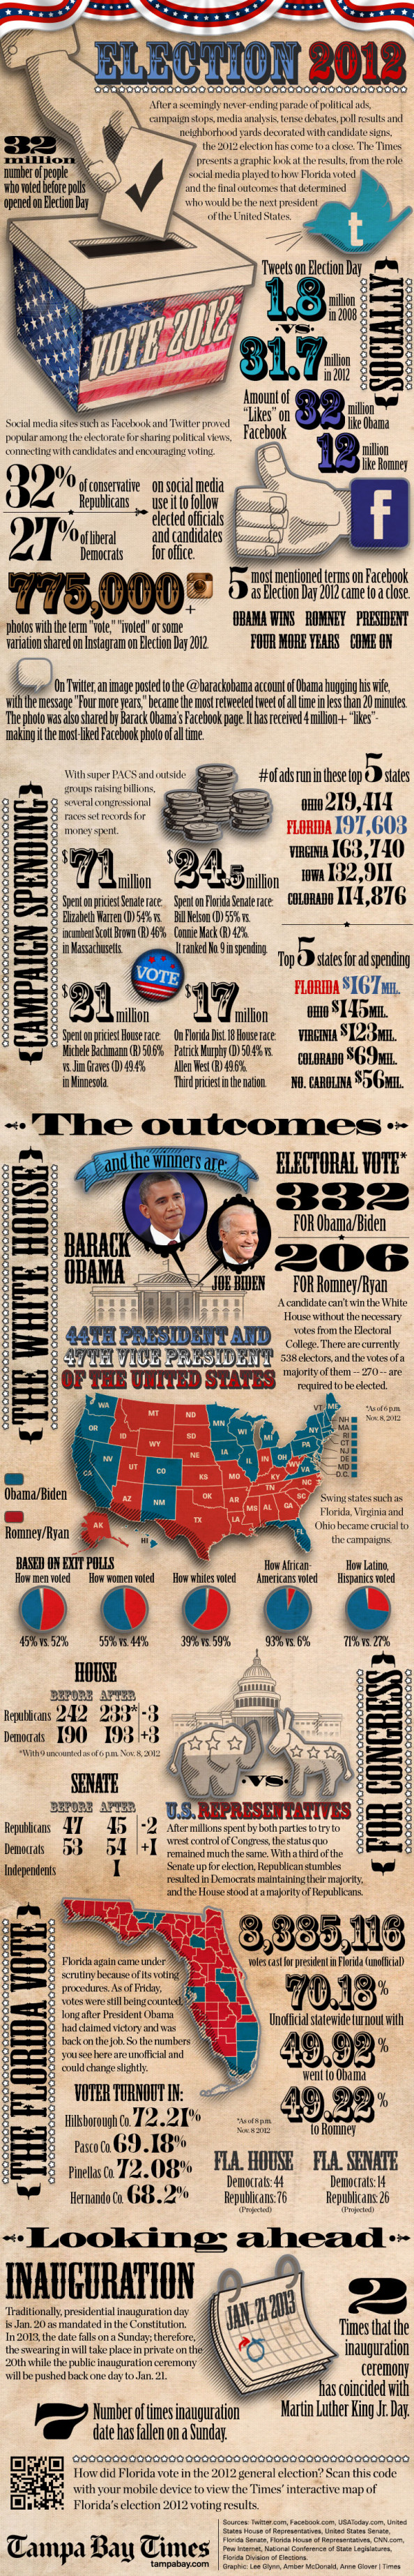 By the Numbers: Election 2012 Infographic